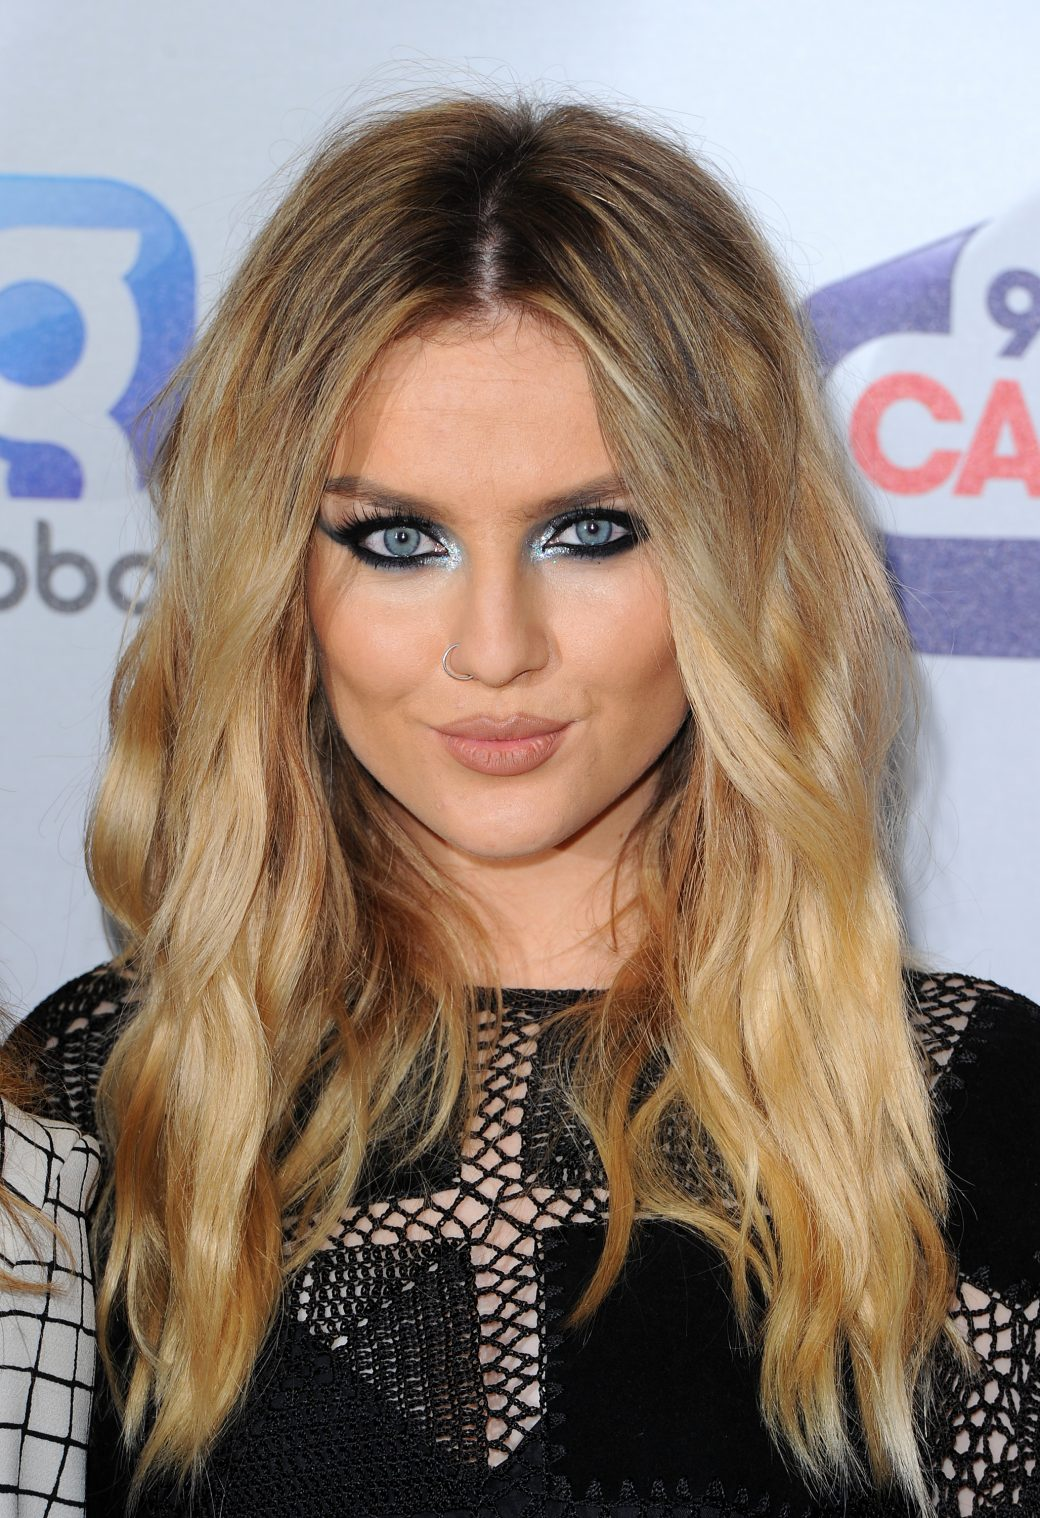 LONDON, UNITED KINGDOM - JUNE 21: Perrie Edwards of Little Mix attends the Capital Summertime Ball at Wembley Stadium on June 21, 2014 in London, England. (Photo by Eamonn McCormack/WireImage)